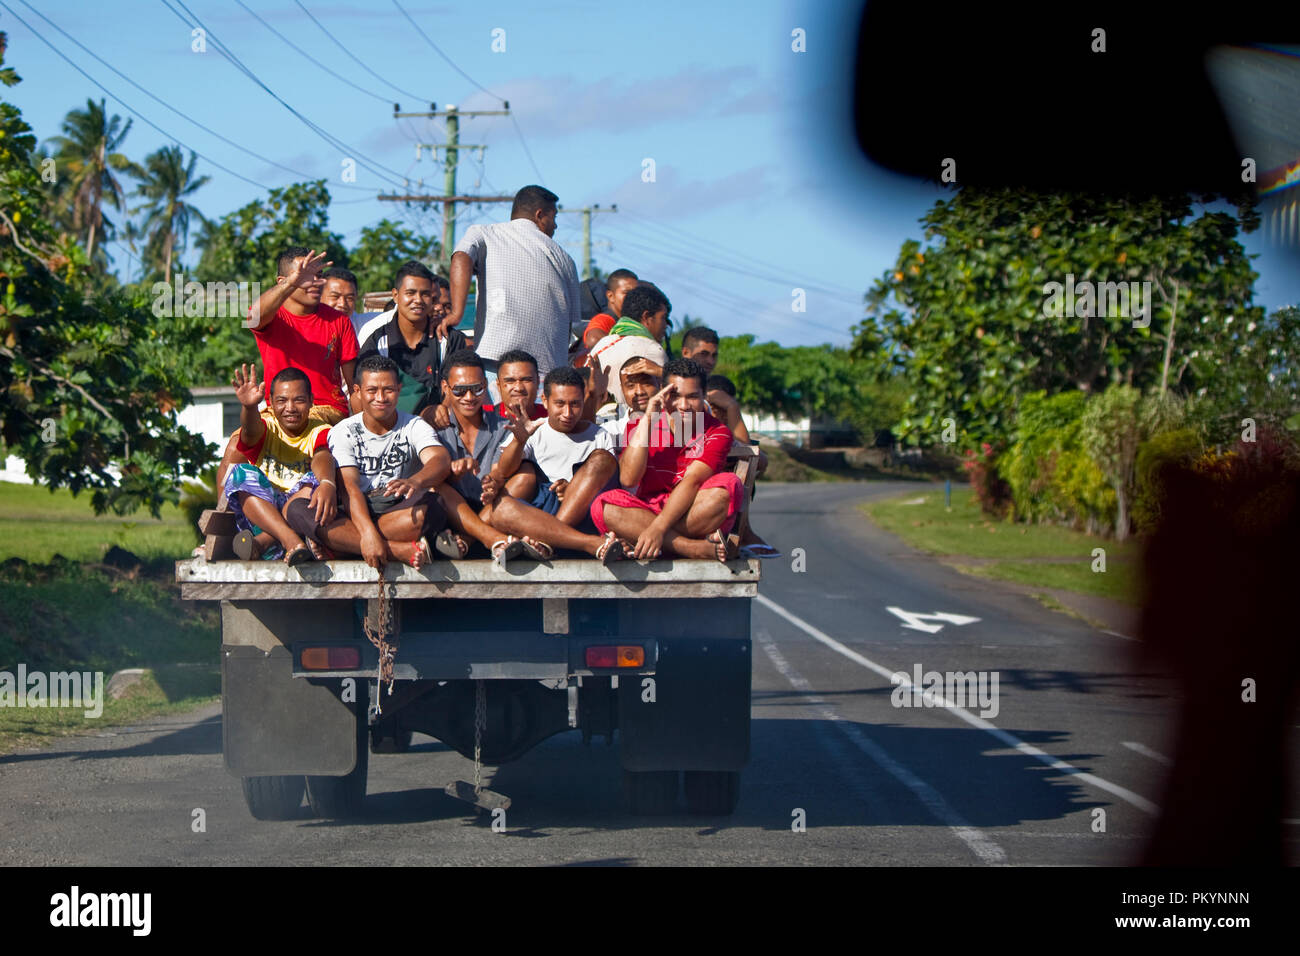 Locals hitching a ride on the back of a truck, Savai'i Island, Samoa. - Stock Image